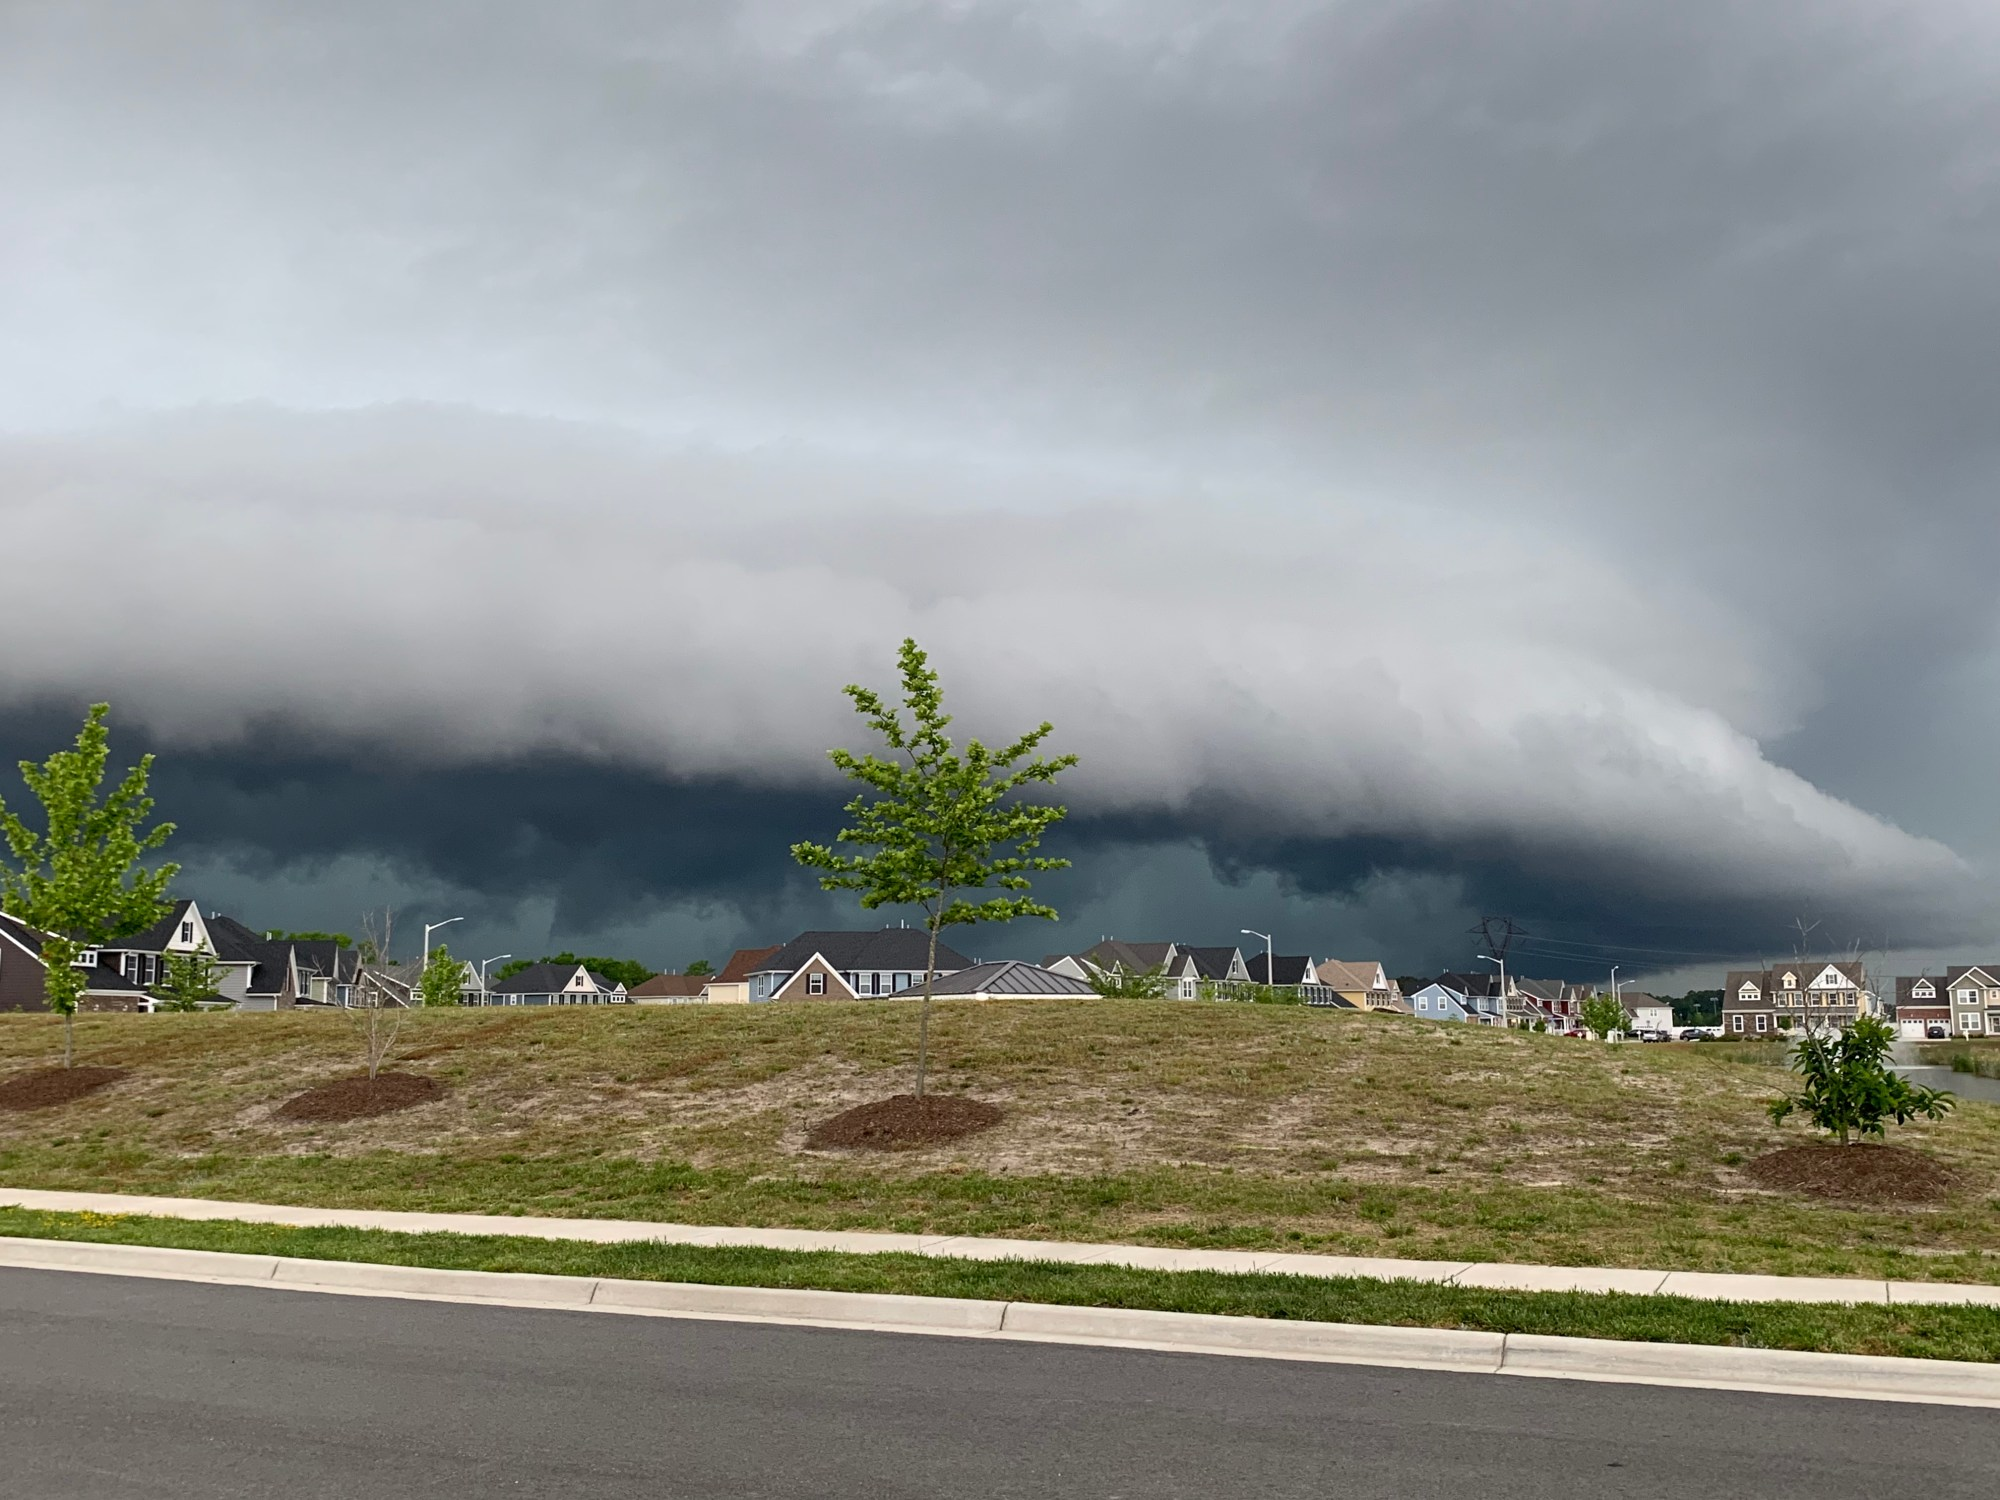 PHOTOS: Big Storm System Moves Through Hampton Roads